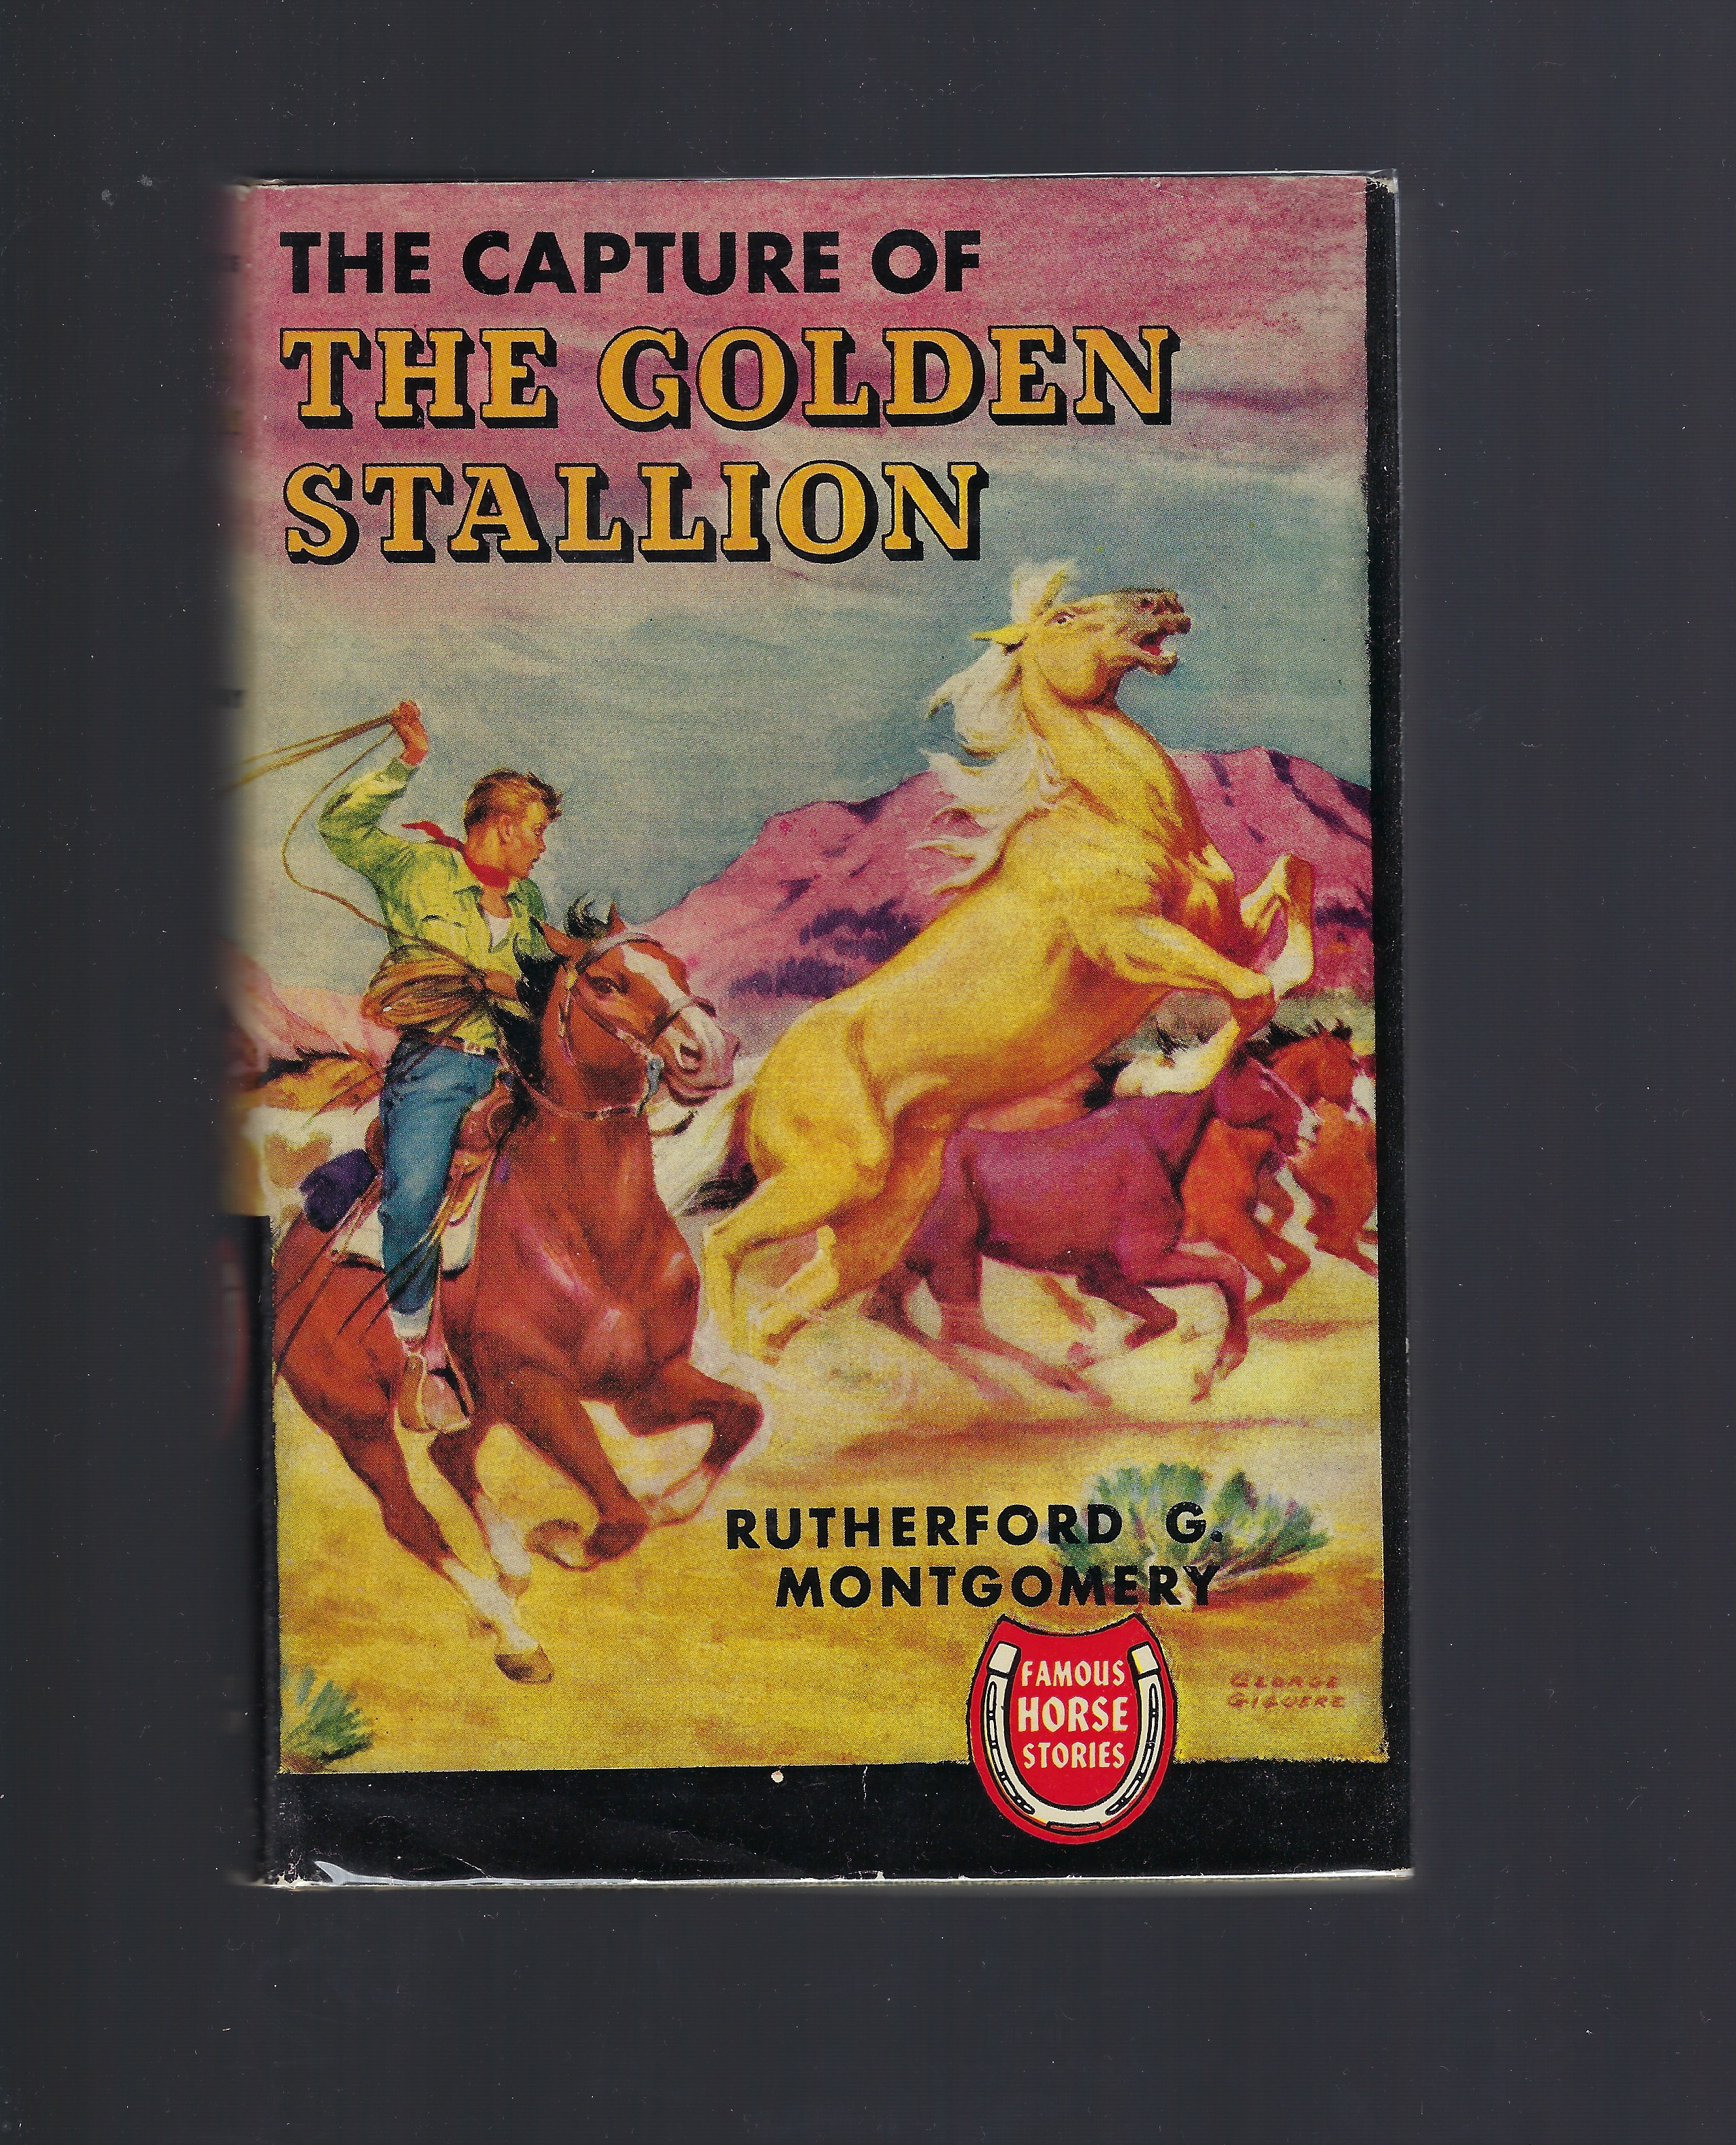 The Capture of the Golden Stallion (Famous Horse Stories), Rutherford Montgomery